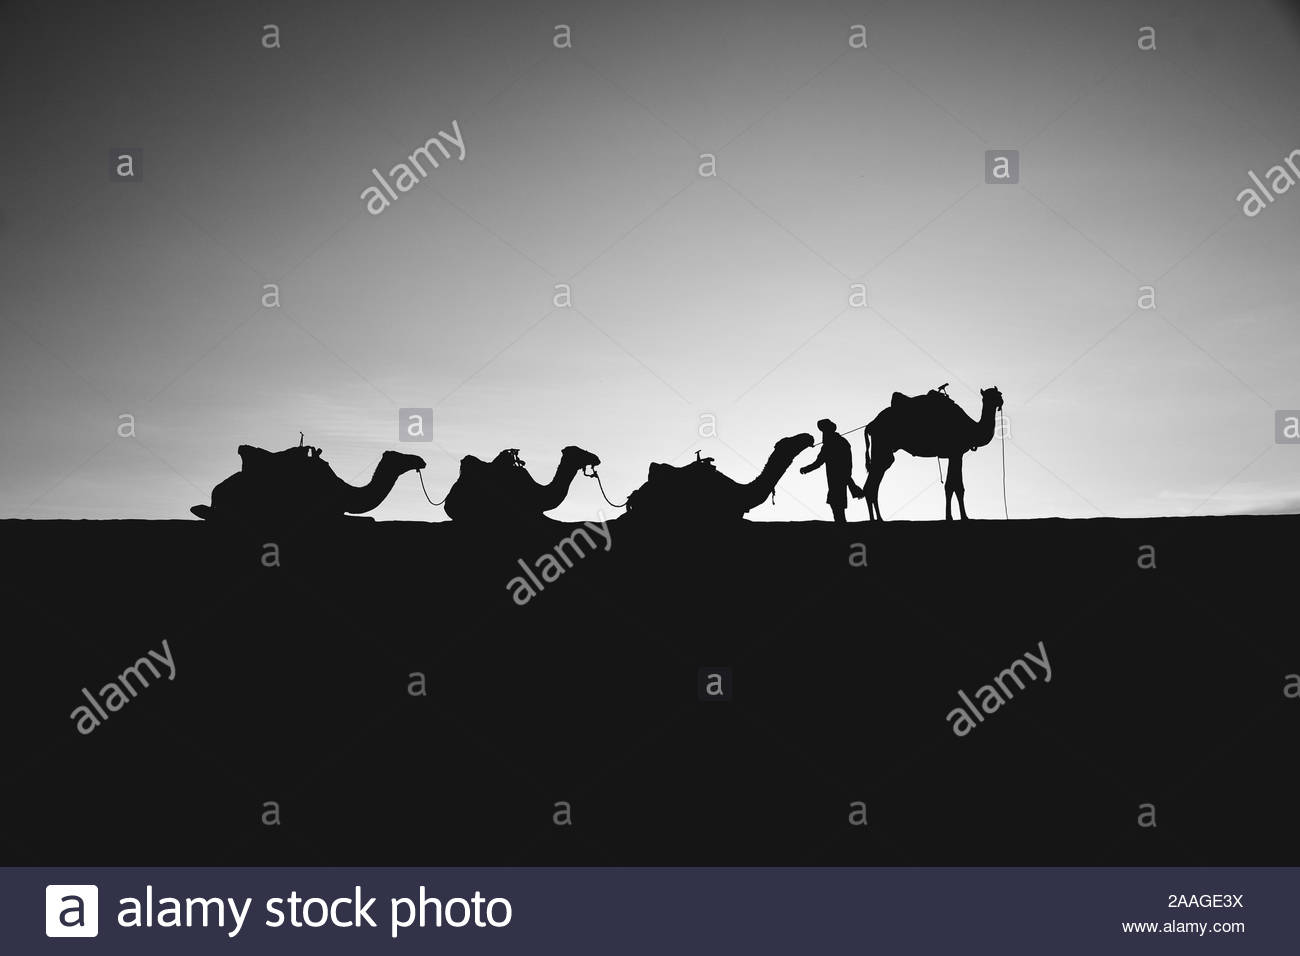 Merzouga, Errachidia / Morocco - 10 03 2019: Four dromedaries waiting to start the march together with a man in a black and white picture Stock Photo